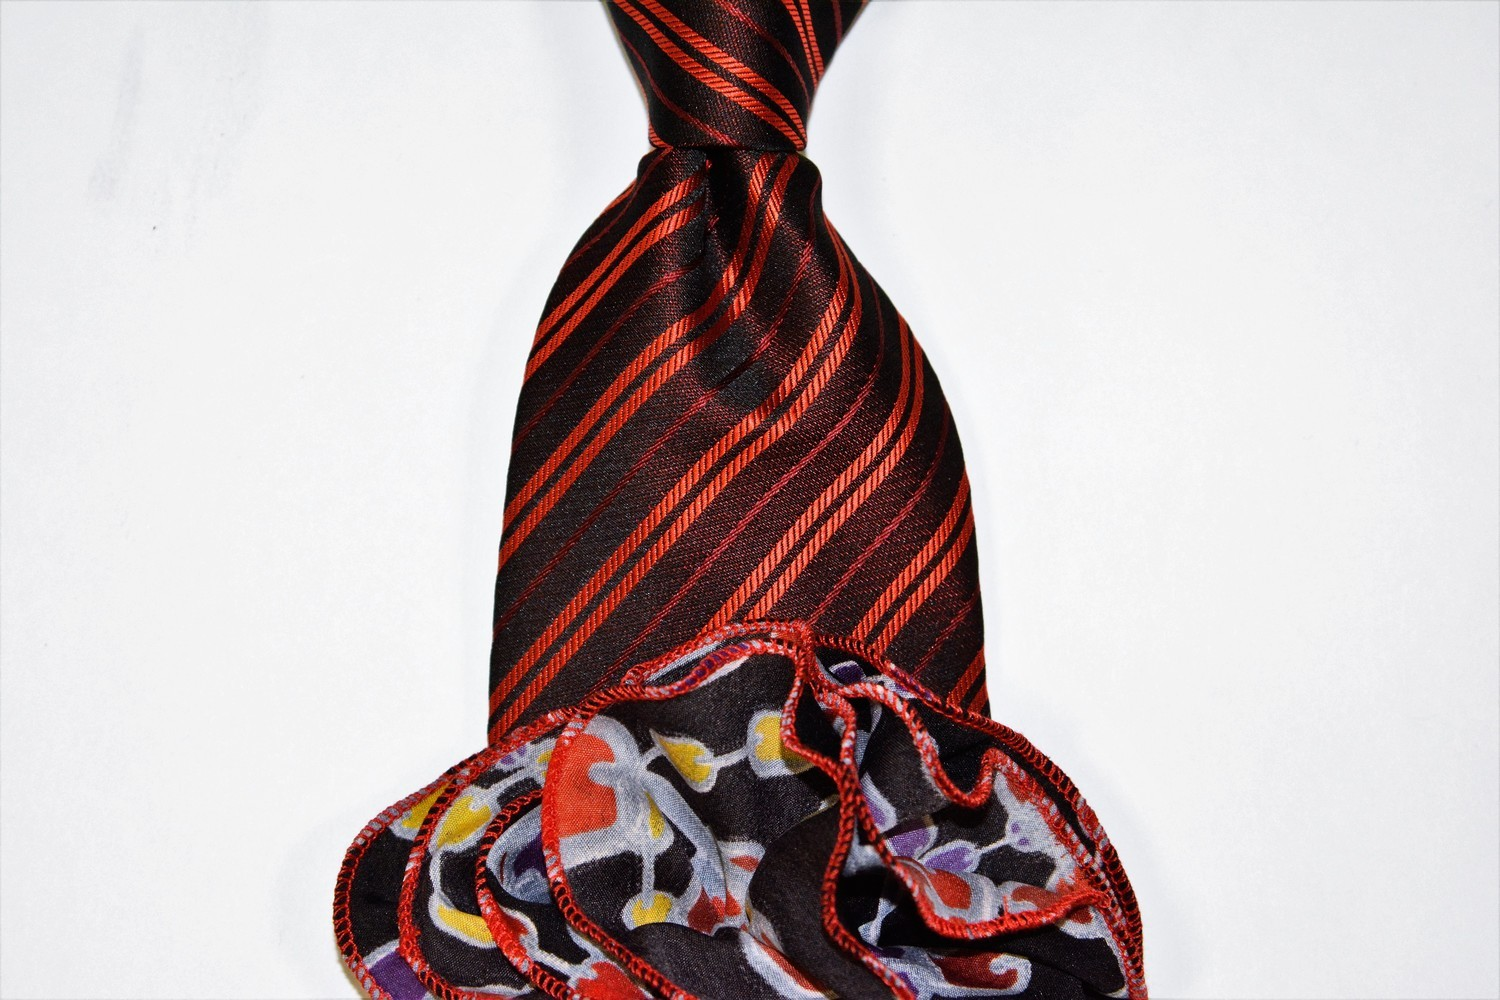 Tie + Round: Red Black Stripe w/ Chains Round